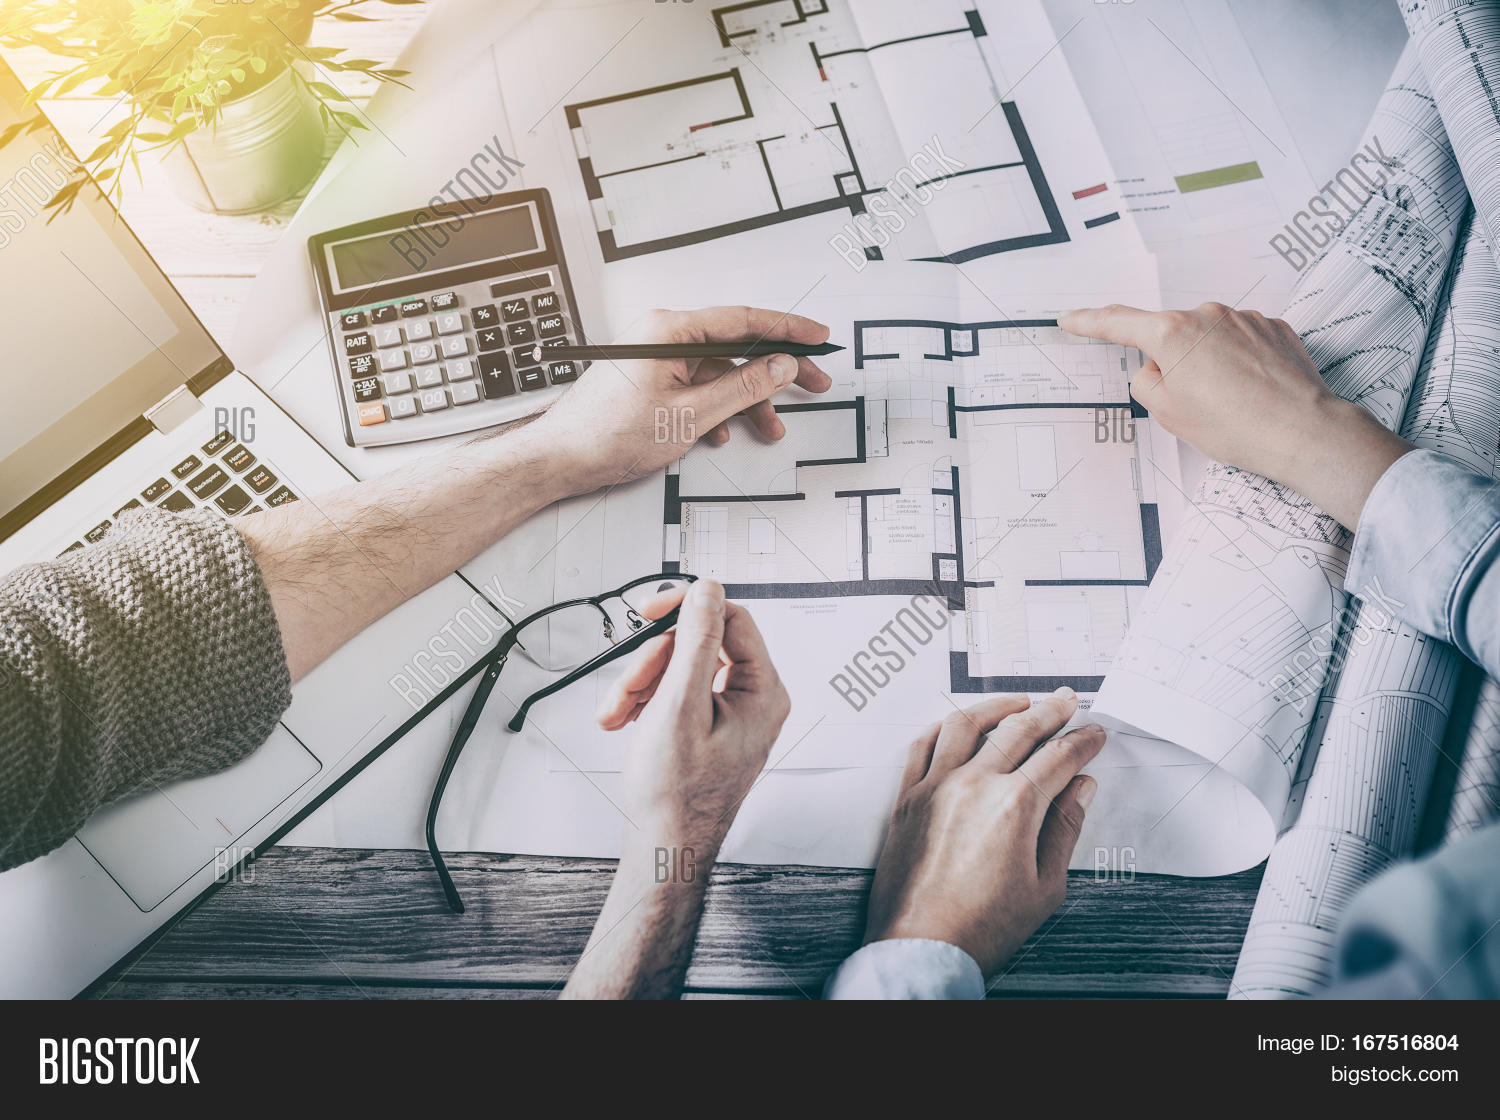 Architects Architect Project Image Photo Bigstock